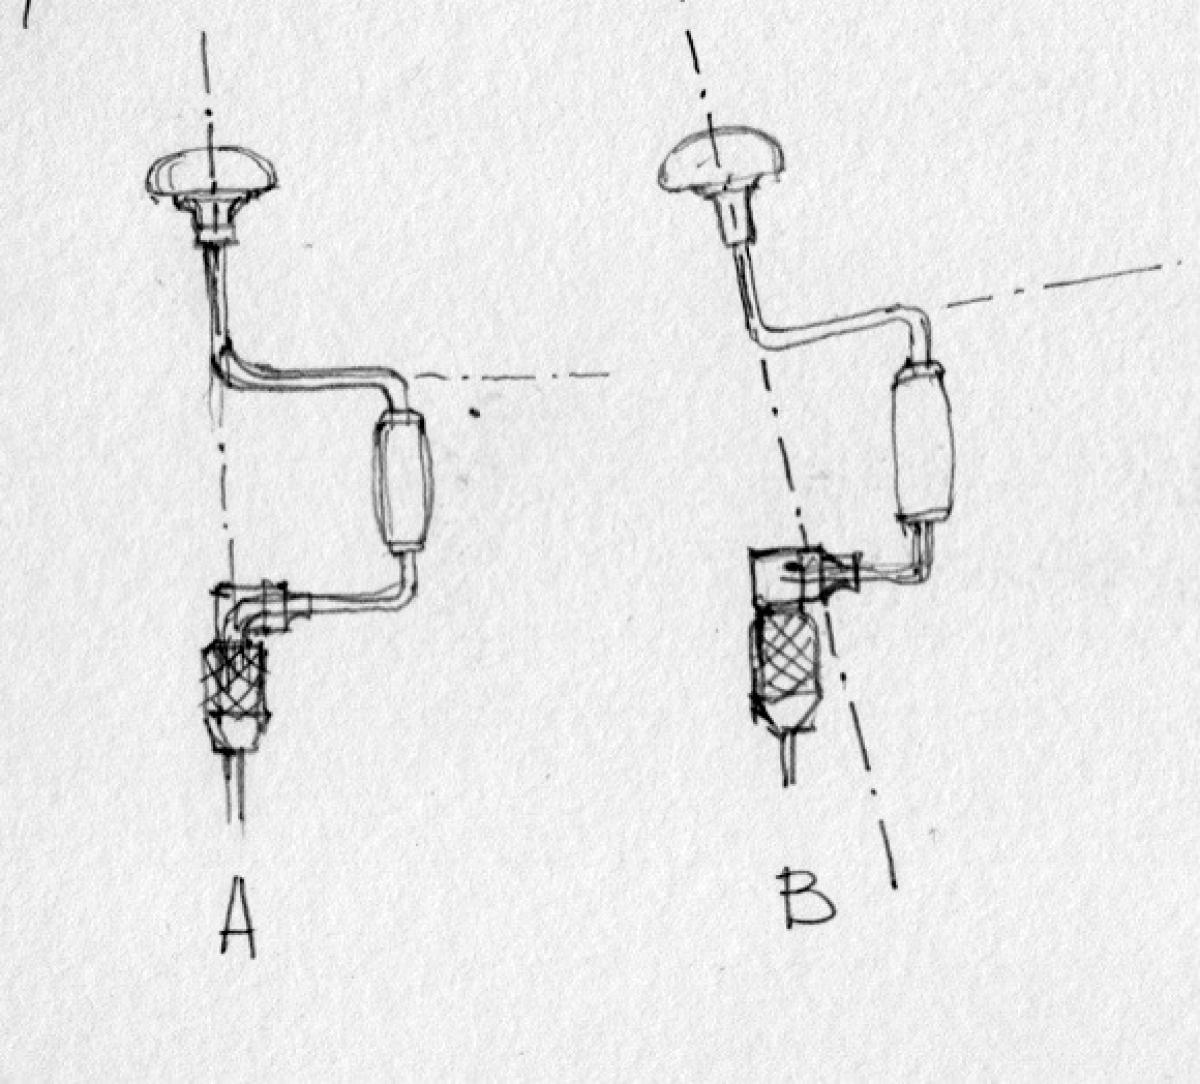 "Another indicator for a mishandled or abused brace is when the brace's crank is eccentric, or in other words when the brace's axis do not run continuously through the head and the chuck (B). A ""healthy"" brace will display a concentric geometry, where its axis run through the head and the chuck (A)"